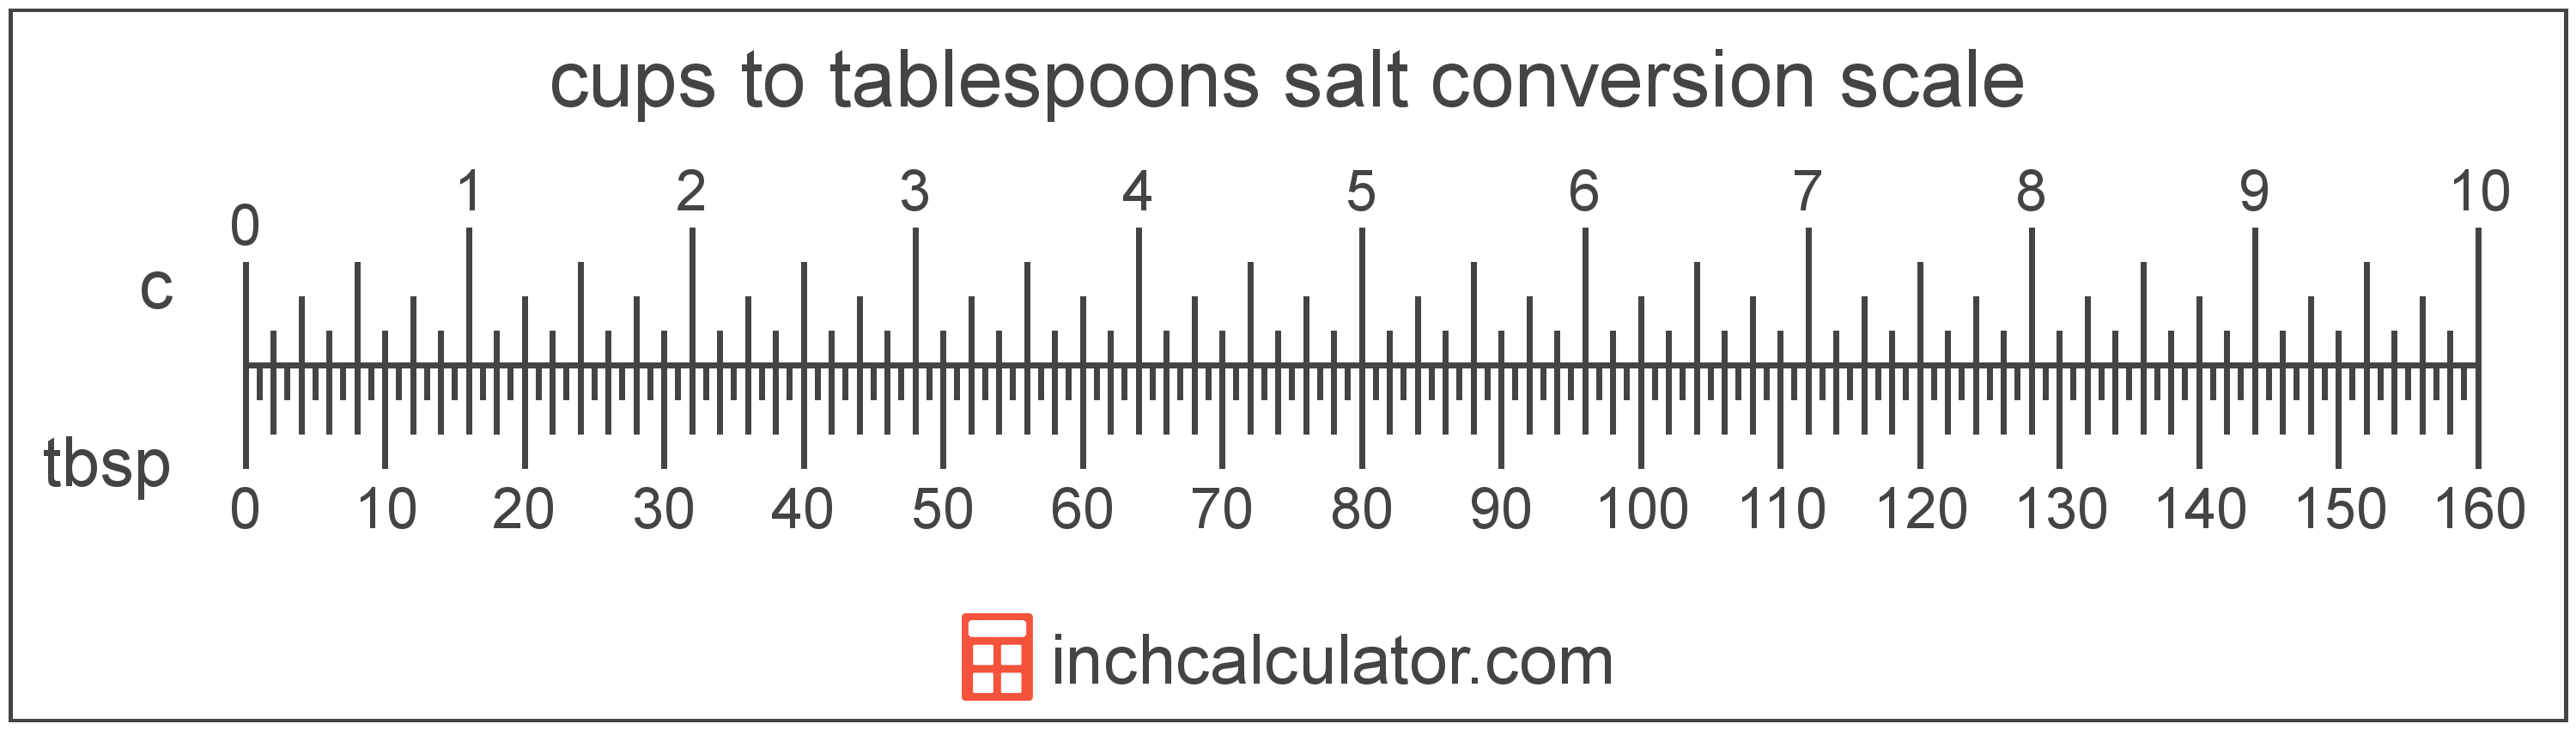 conversion scale showing cups and equivalent tablespoons salt volume values